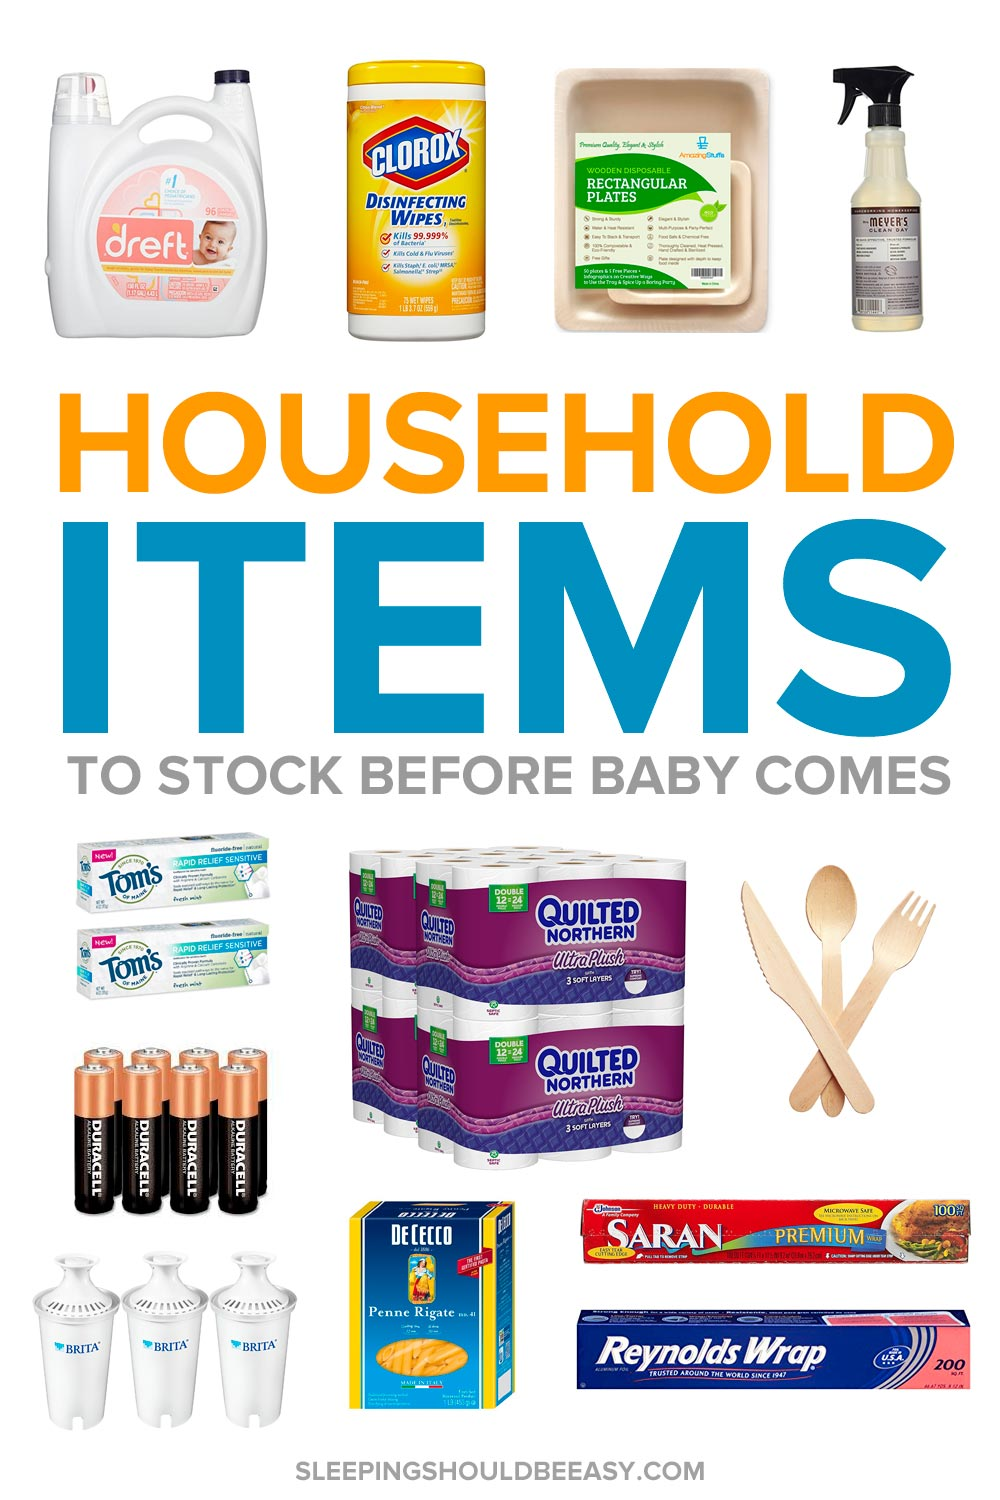 Gearing up for the new baby? Learn the essential household items to stock up before baby arrives and make those newborn months more convenient.